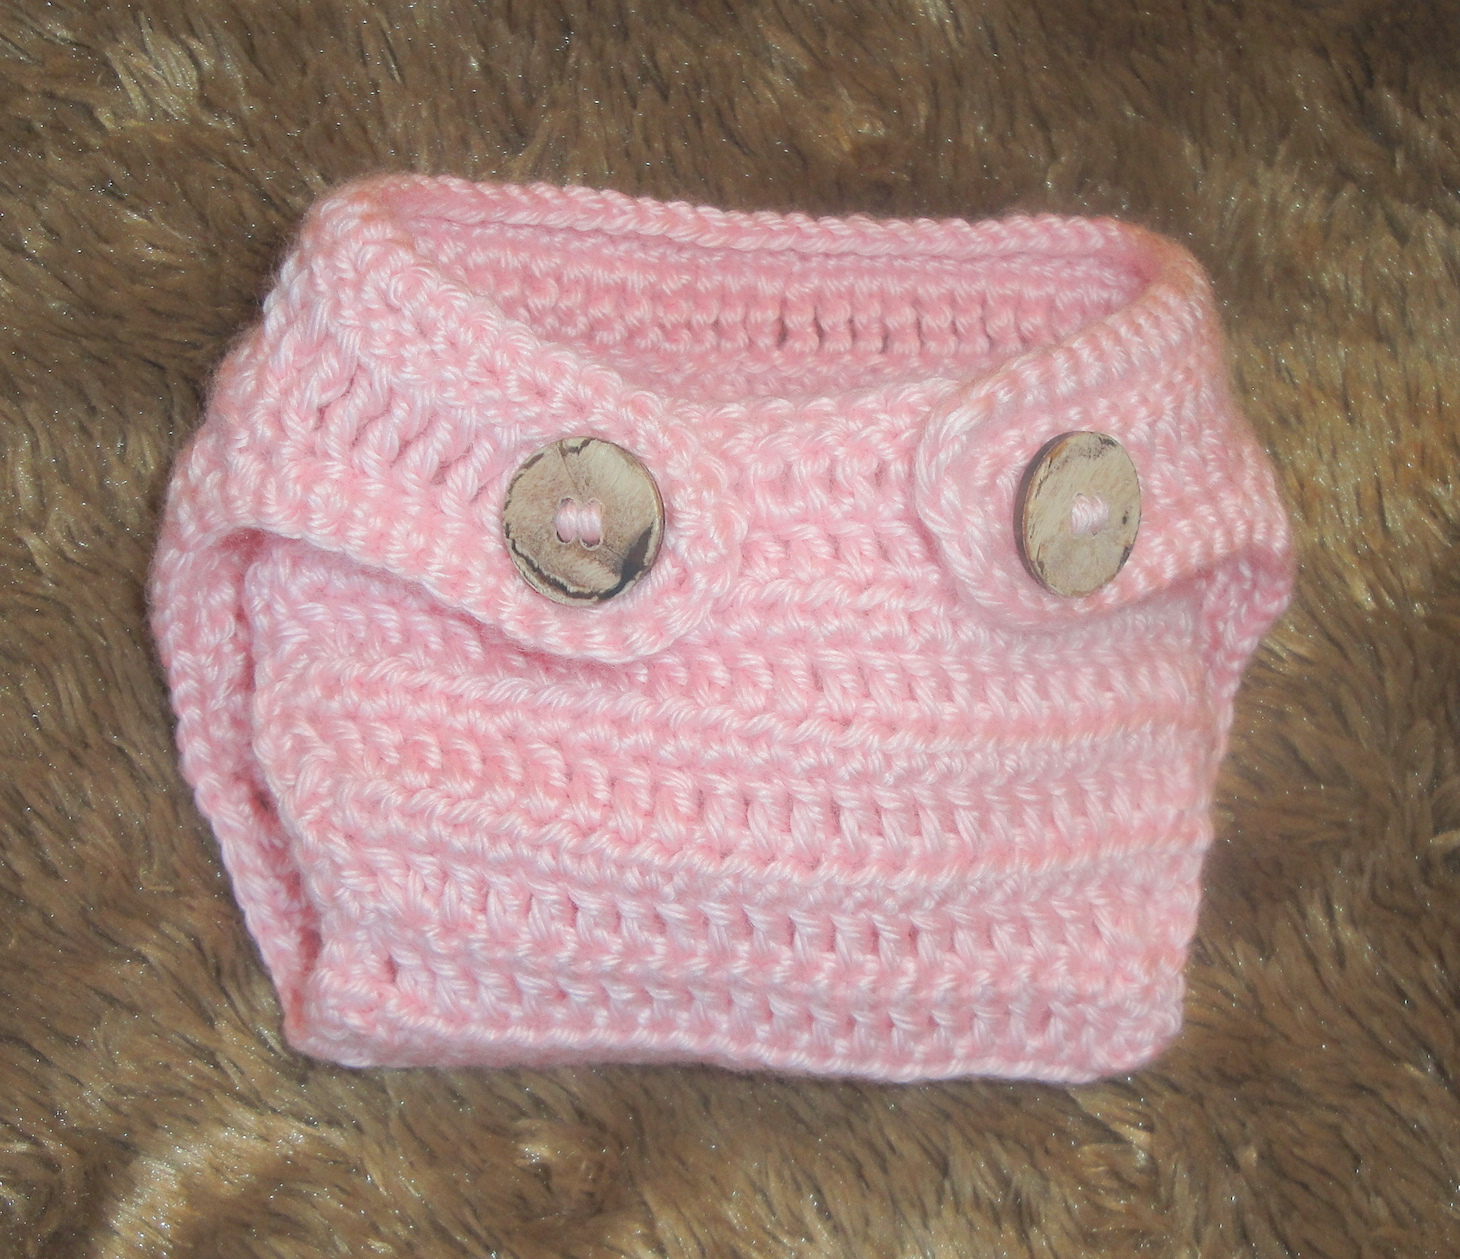 Beanie Blog: Crochet Diaper Cover-up